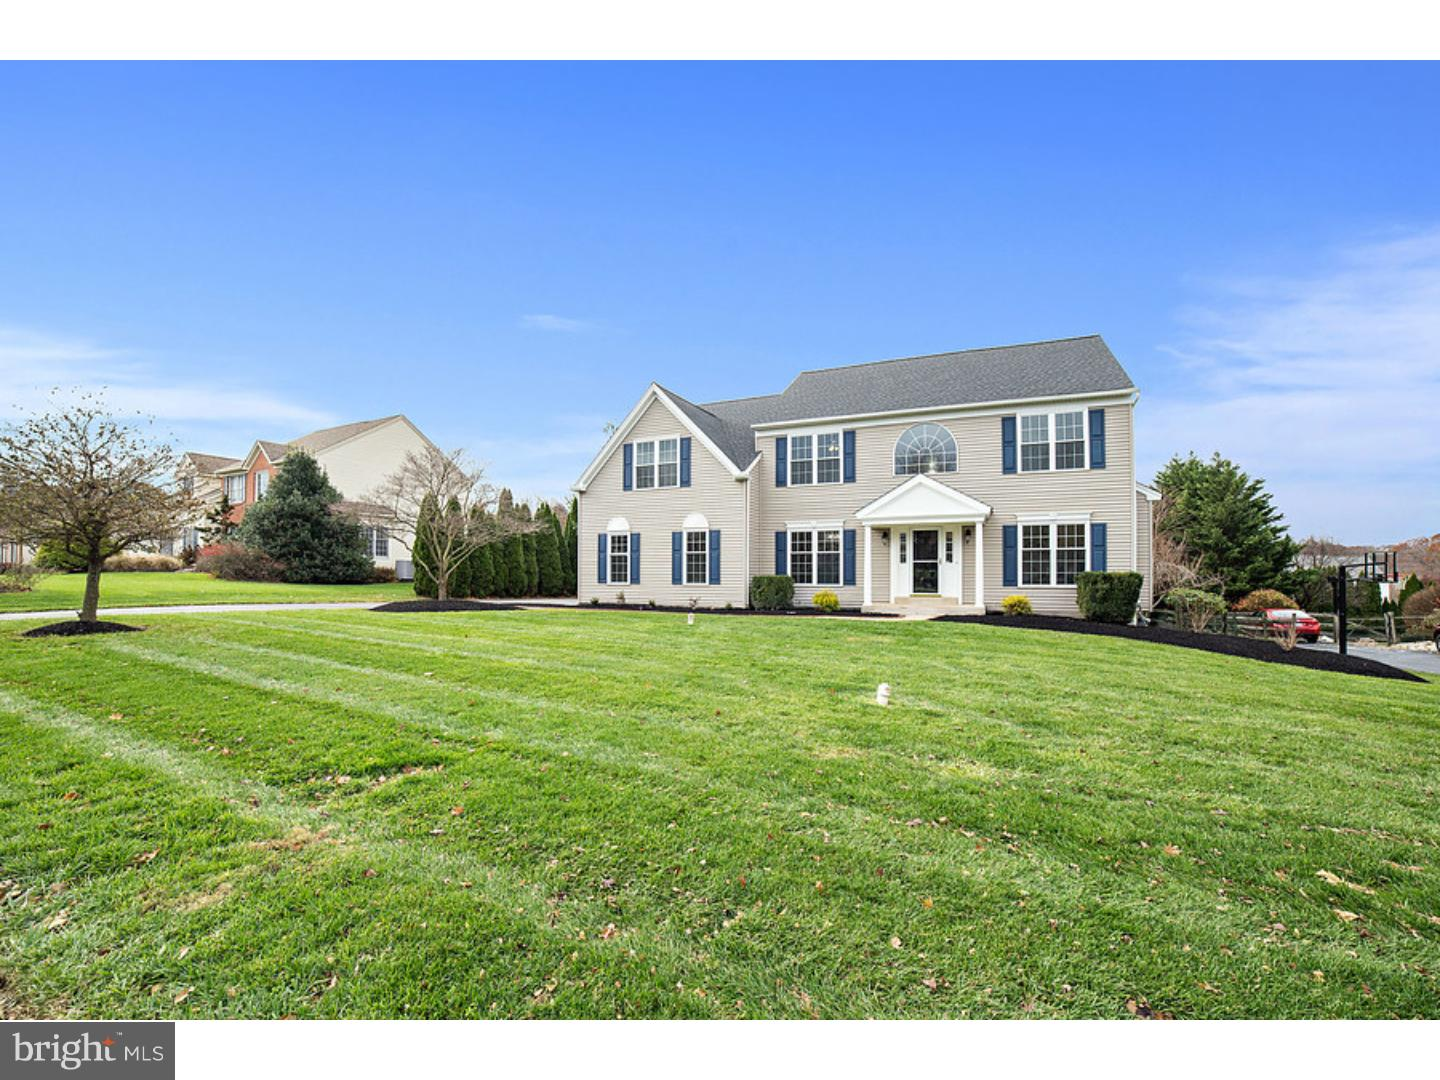 1406 Full Cry Court West Chester, PA 19380